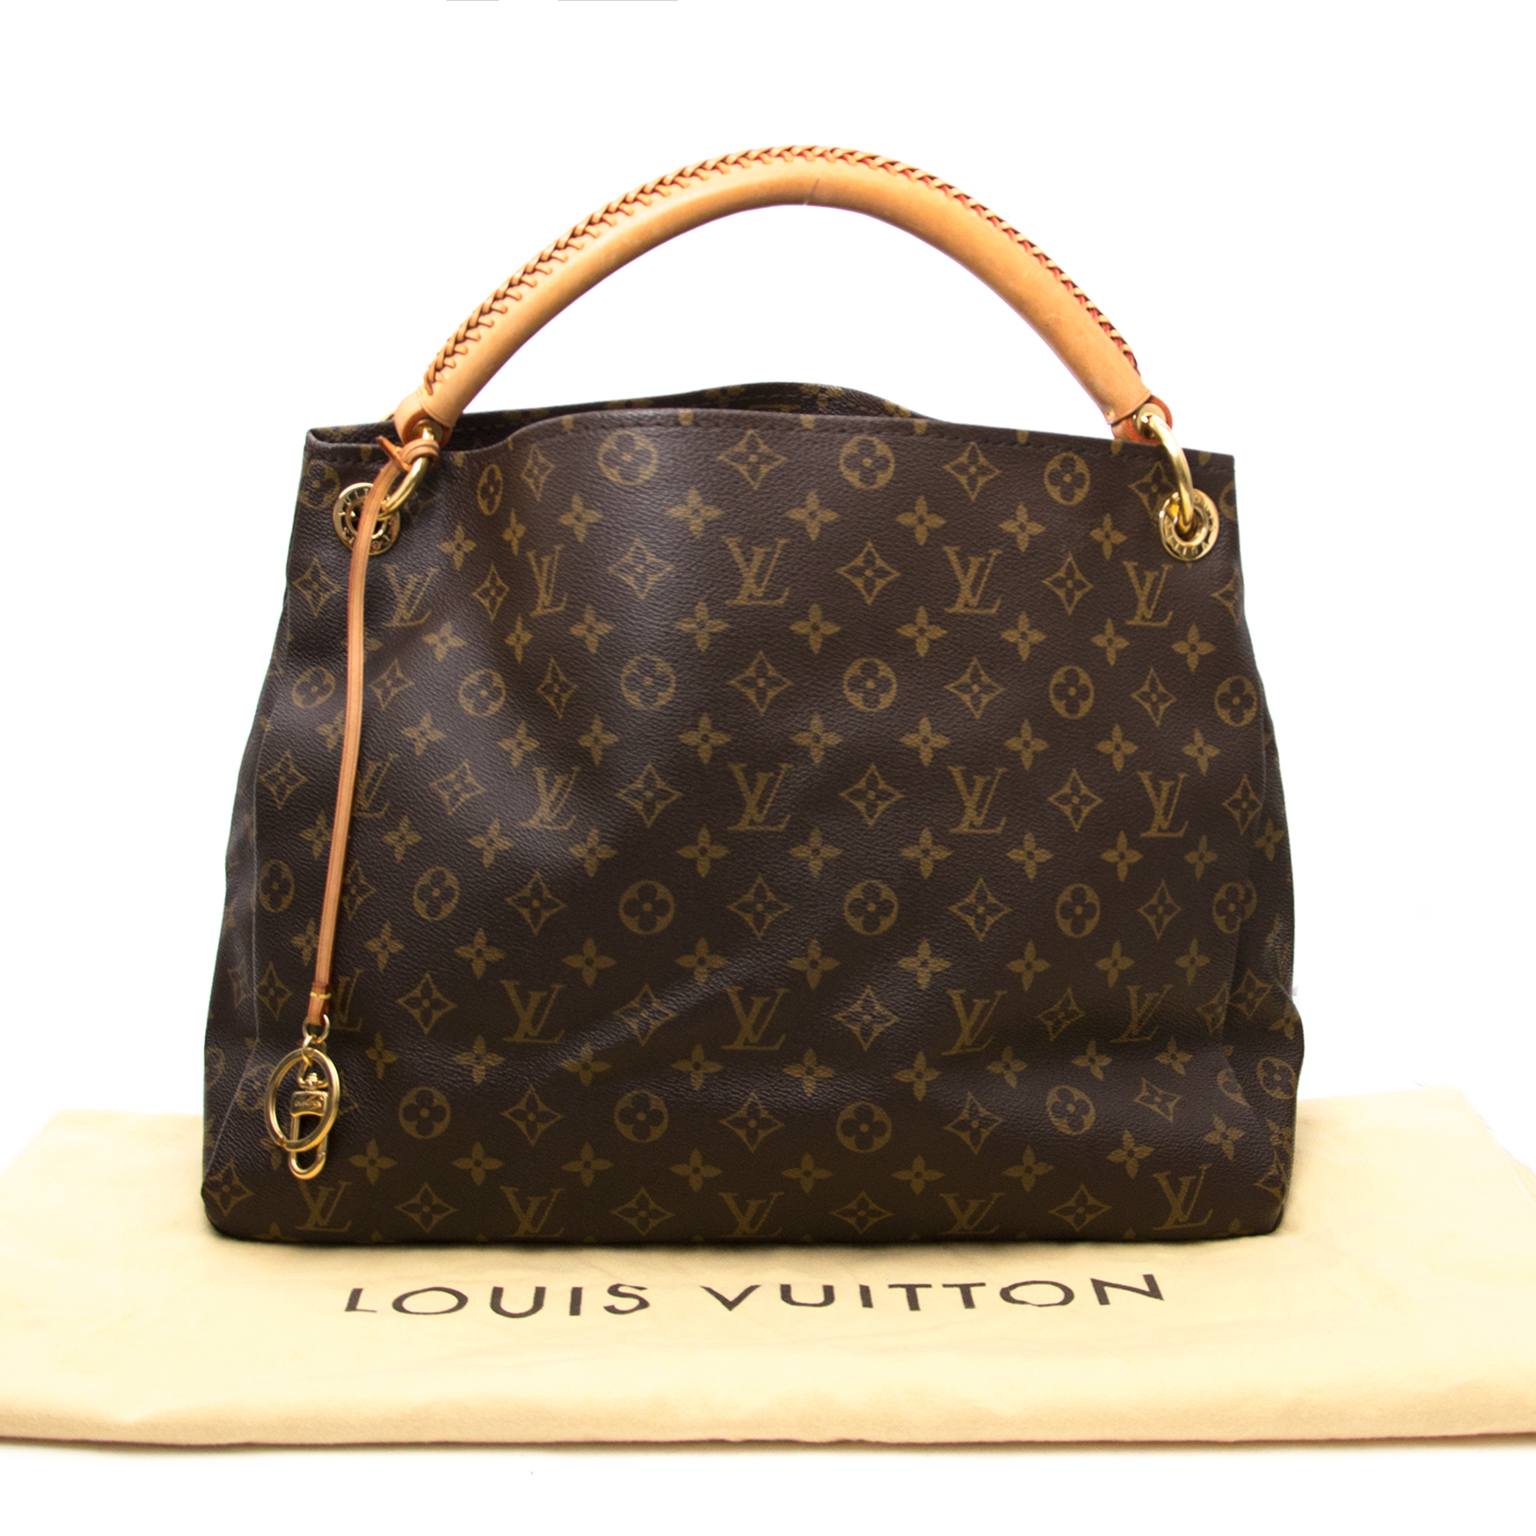 comme neuf sac a main Louis Vuitton Monogram Artsy MM Top Handle Bag